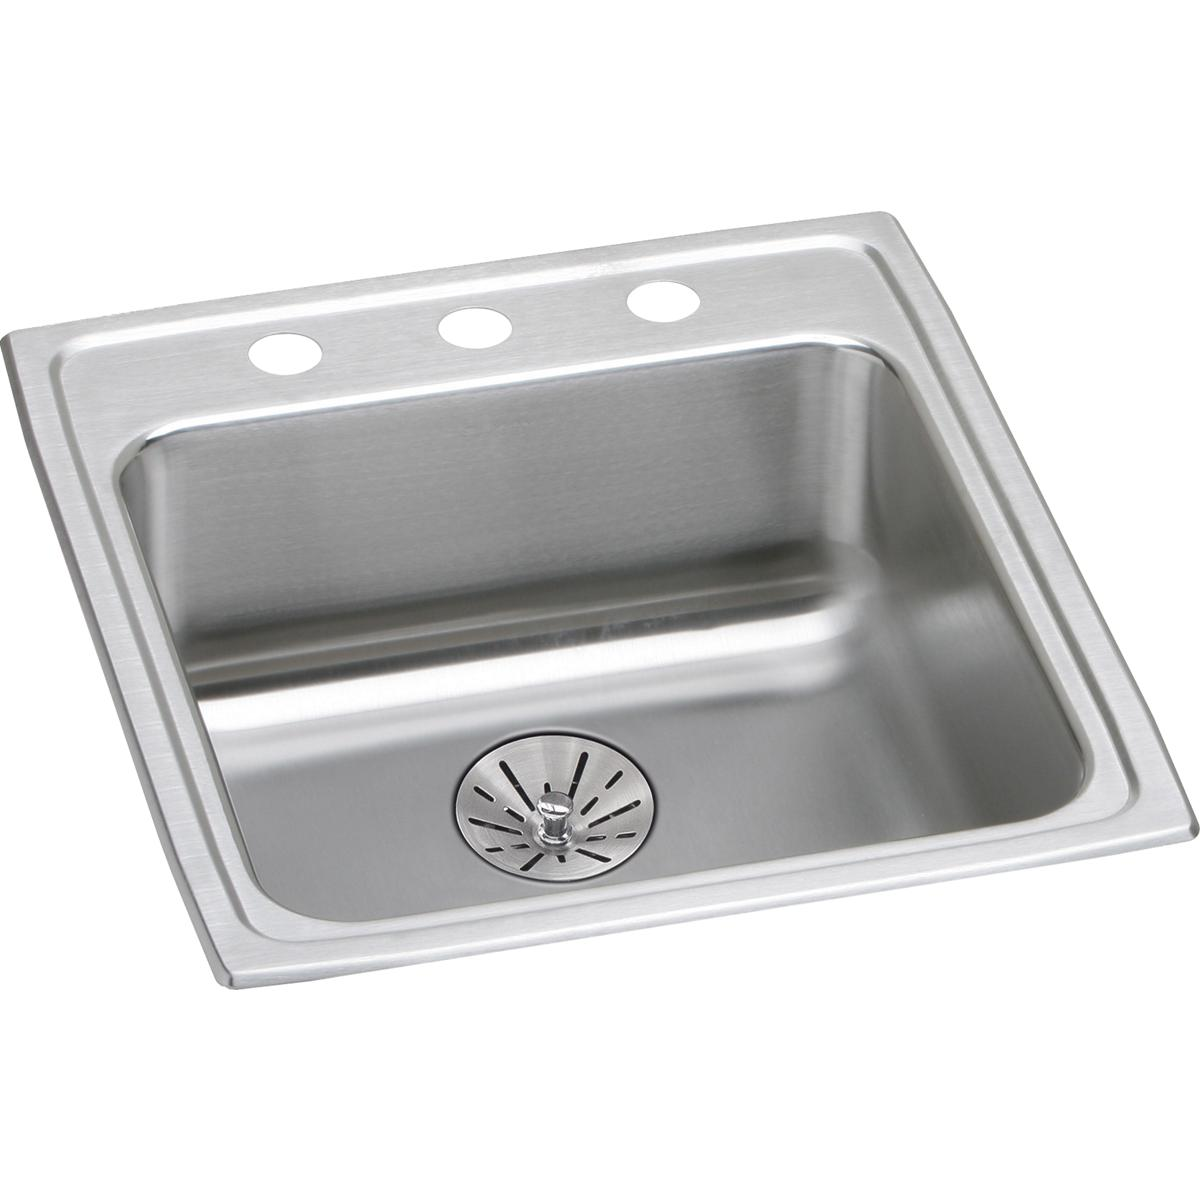 "Elkay Lustertone Classic Stainless Steel 19-1/2"" x 22"" x 6-1/2"", Single Bowl Drop-in ADA Sink with Perfect Drain"